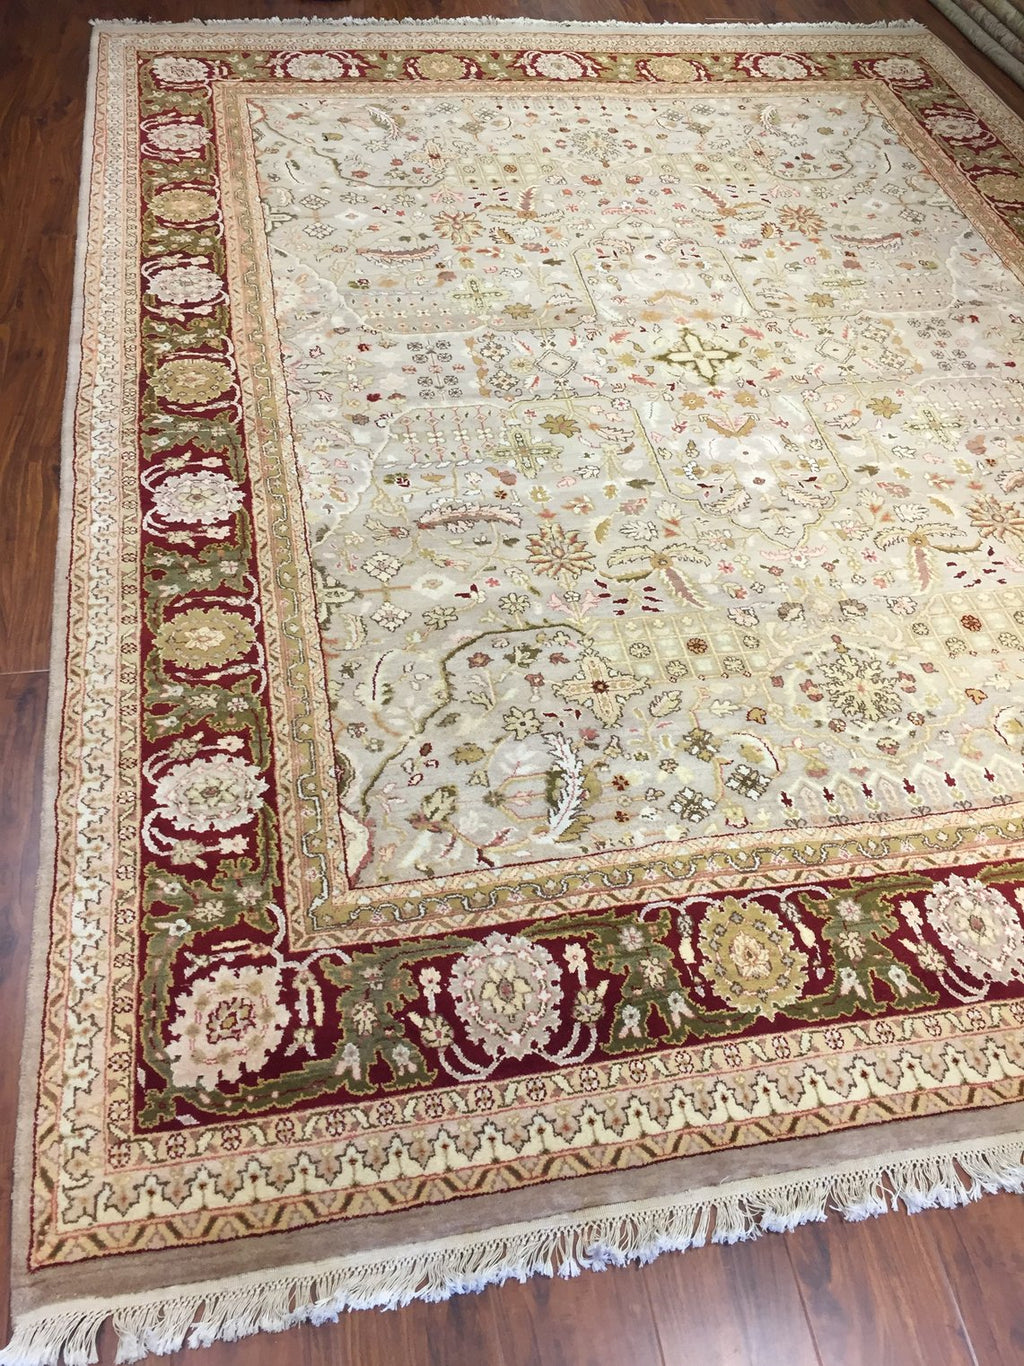 Authentic Handmade fine Indiaian Rug-Wool Floral Pattern-Light Olive/Burgundy-(8 by 10.2 Feet)